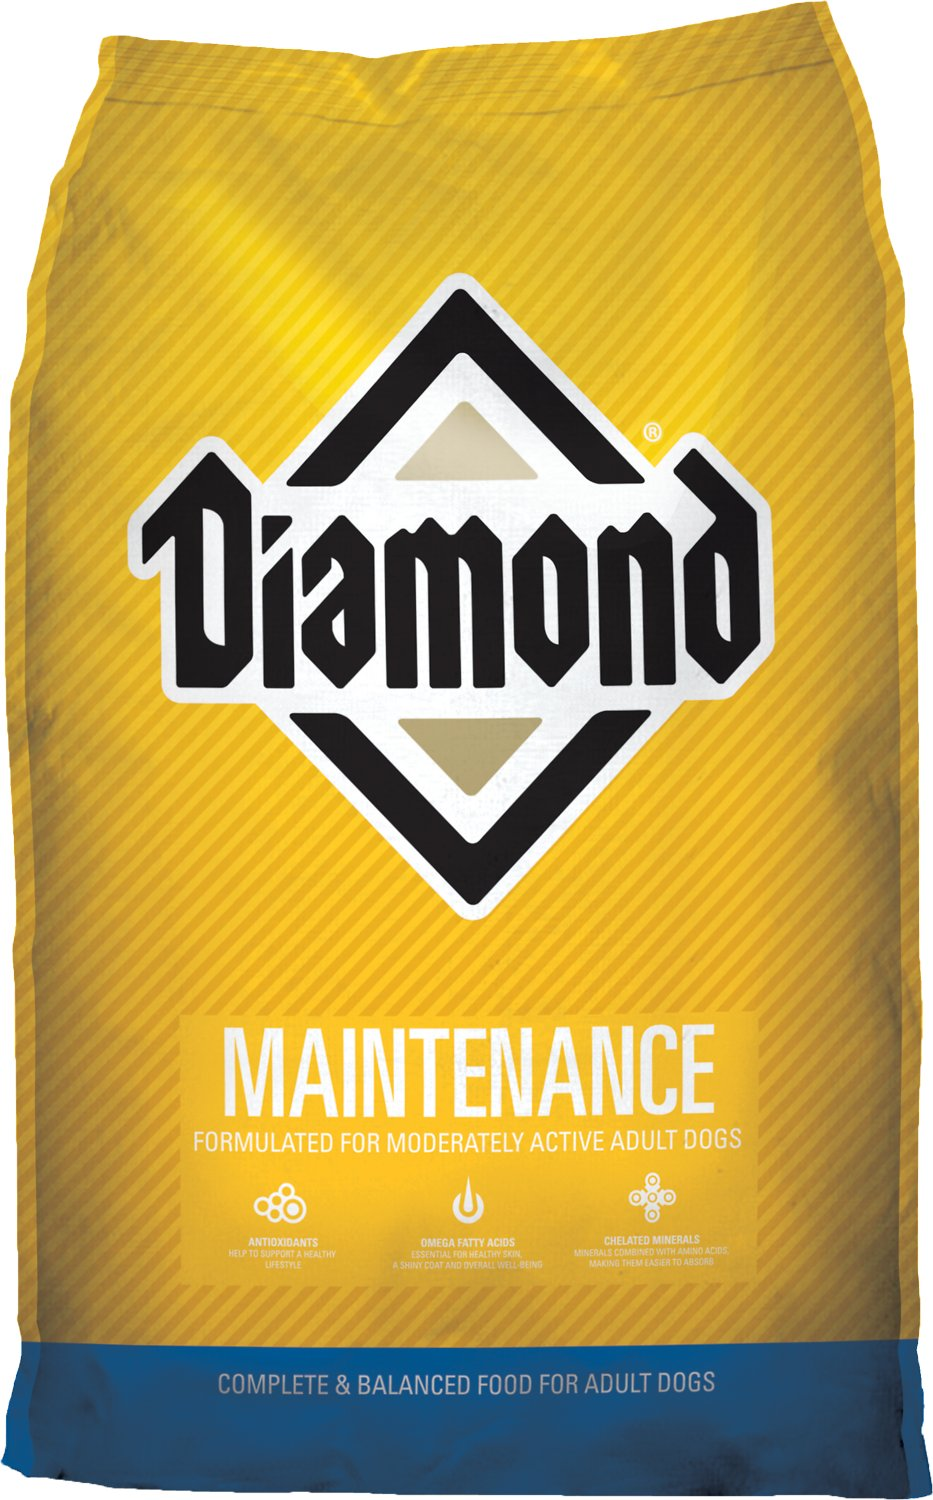 Diamond Maintenance Dog Food